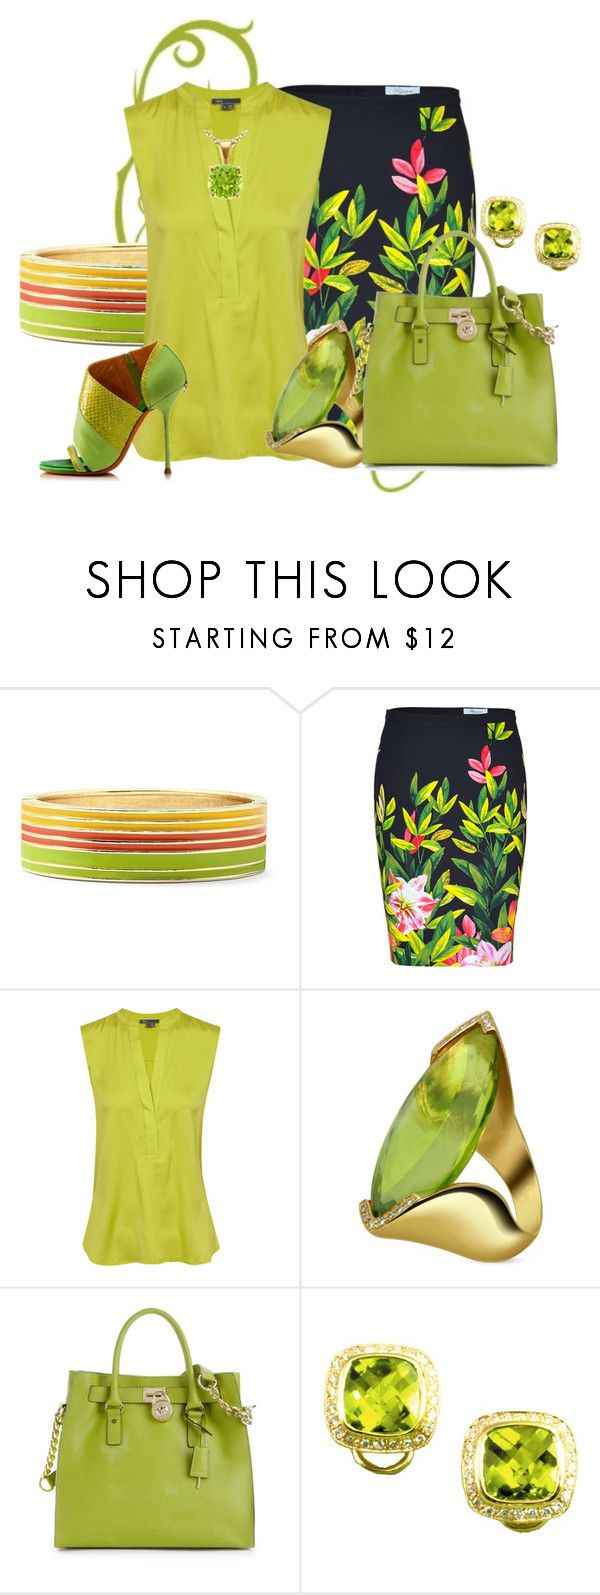 """Green Bag"" by hope-houston ❤ liked on Polyvore featuring Mixit, Blumarine, Vince, GUILLAUME HINFRAY, Forzieri, Michael Kors, Buccellati and Blue Nile"